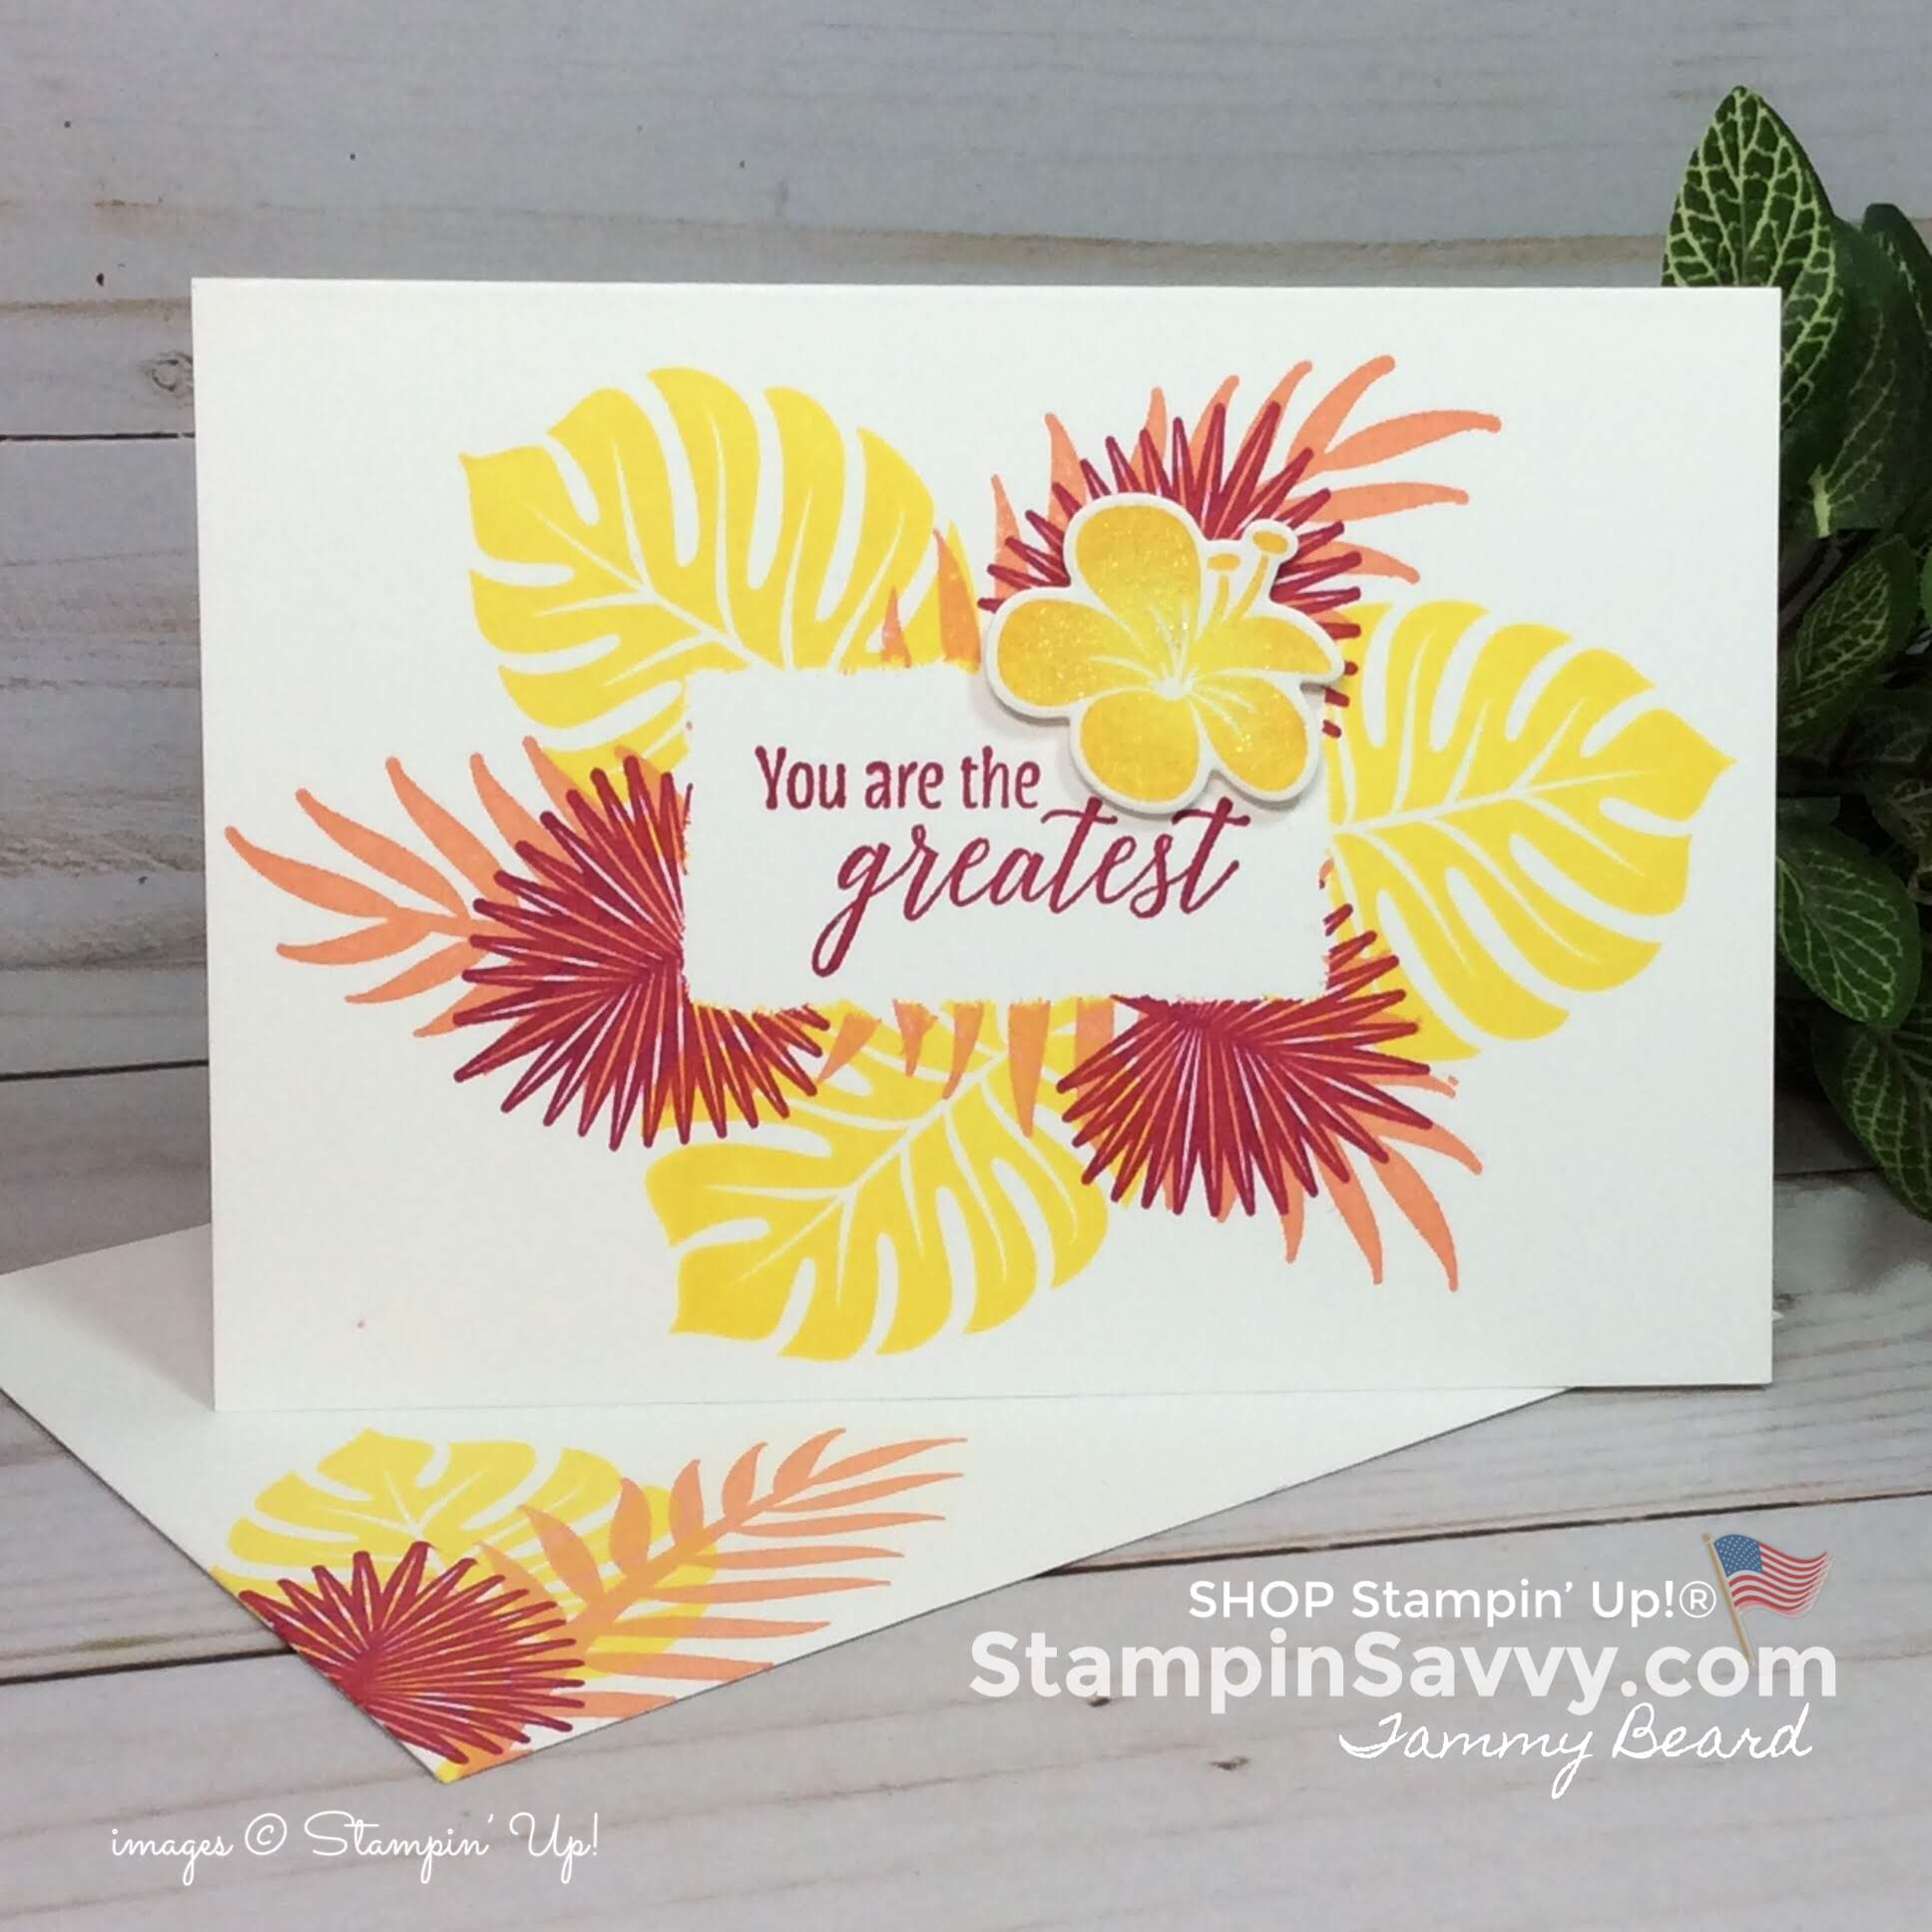 tropical chic stampin up cards, card ideas, masking techniques, in colors 2018, stampin up, stampin savvy, stampinup, tammy beard